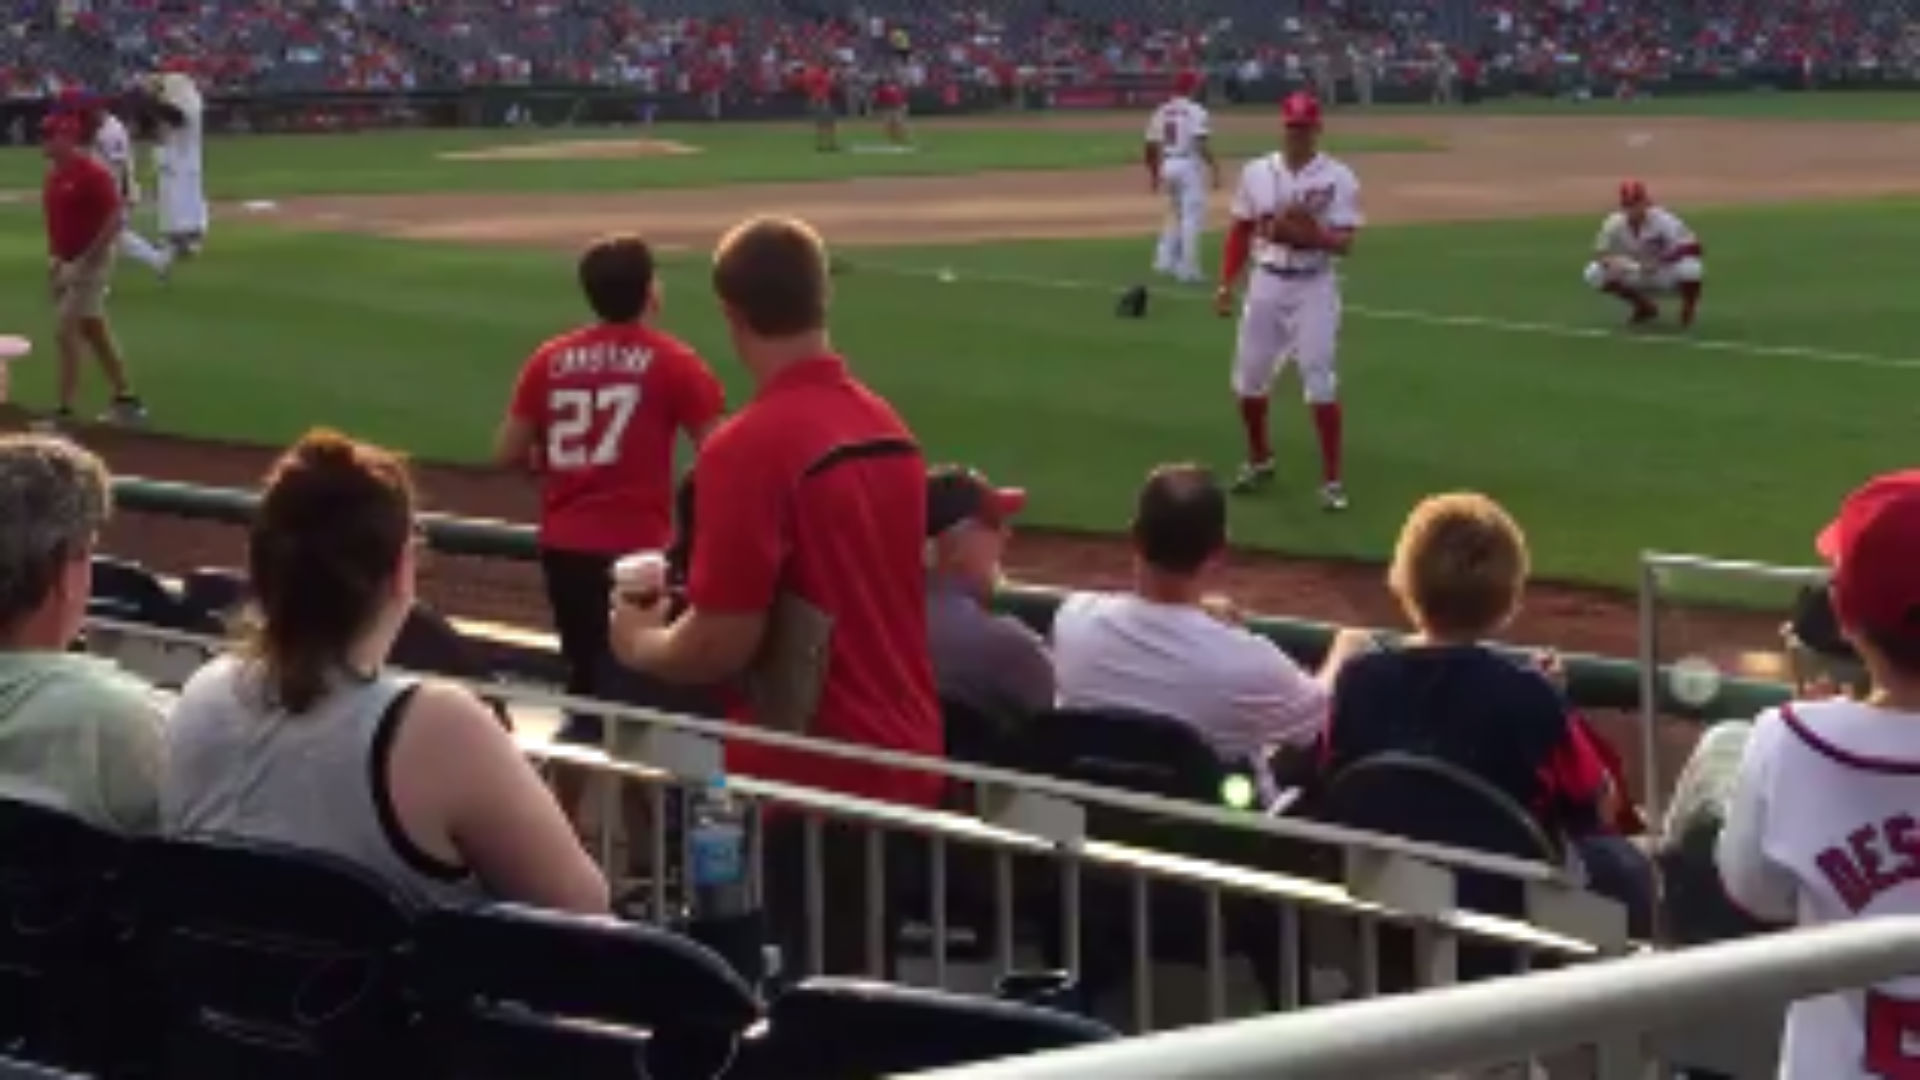 Washington Nationals shortstop Ian Desmond plays catch with a fan with a disability